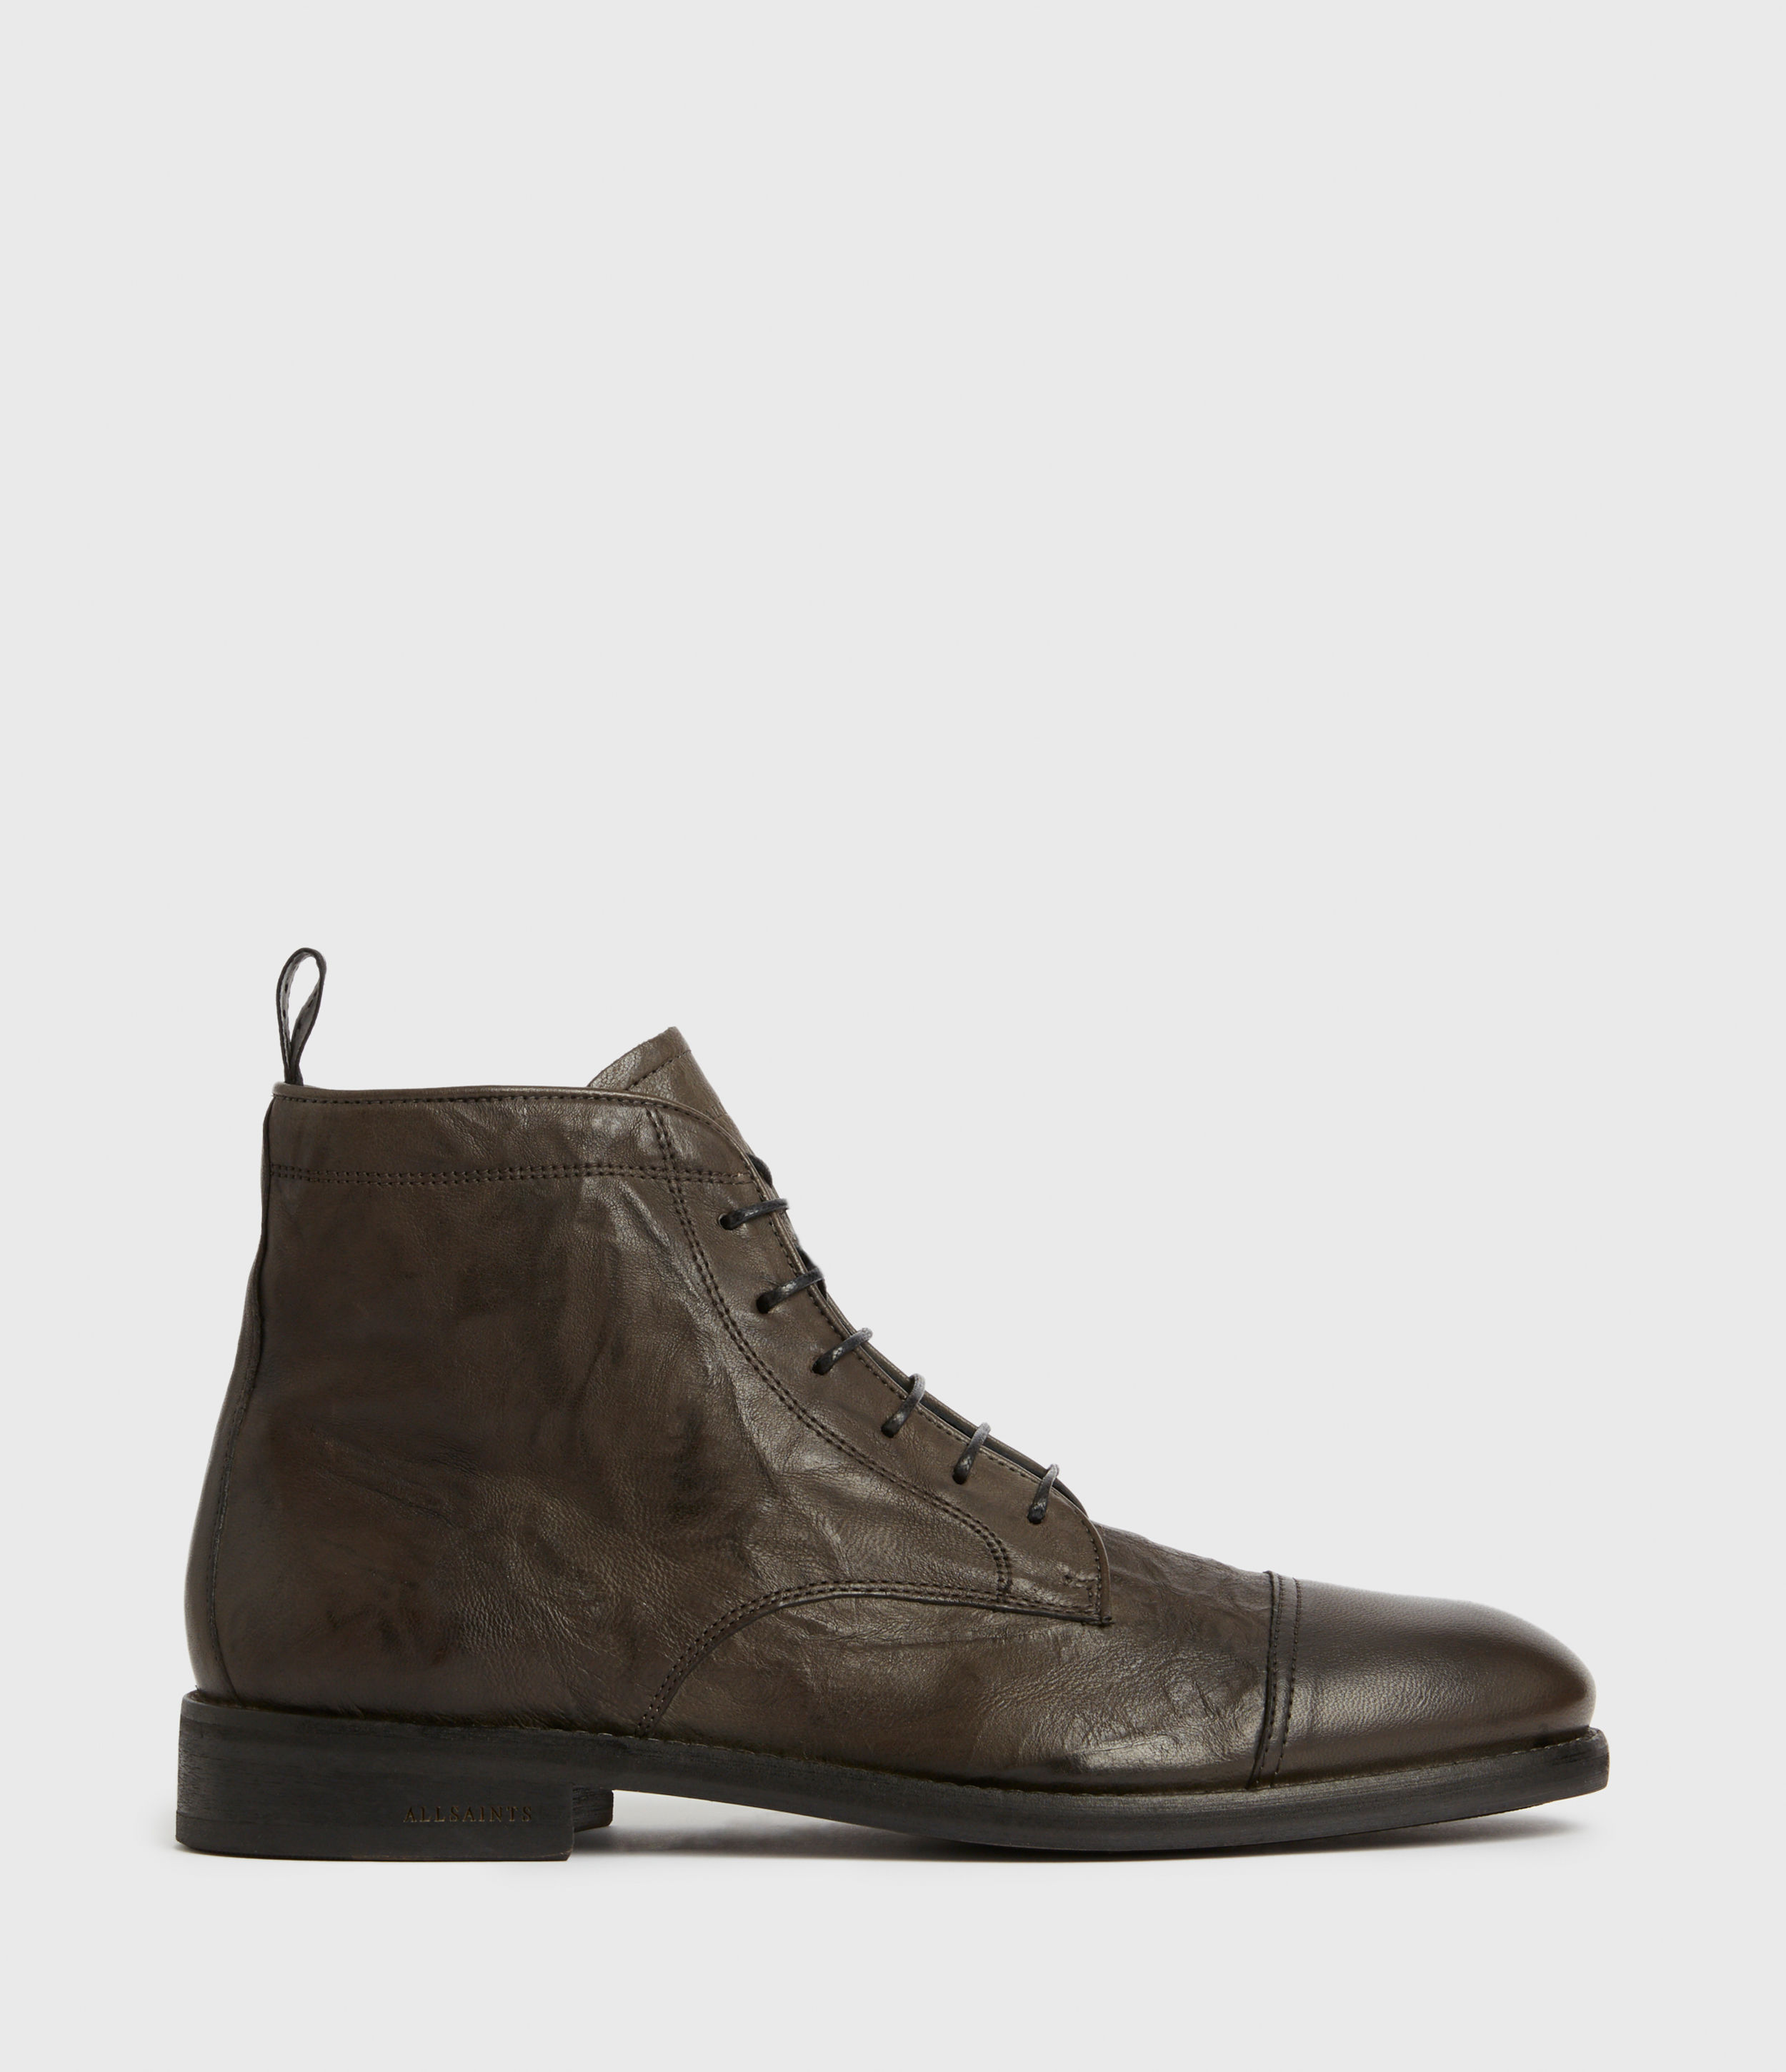 AllSaints Mens Harland Leather Boots, Charcoal Grey, Size: UK 11/US 12/EU 45